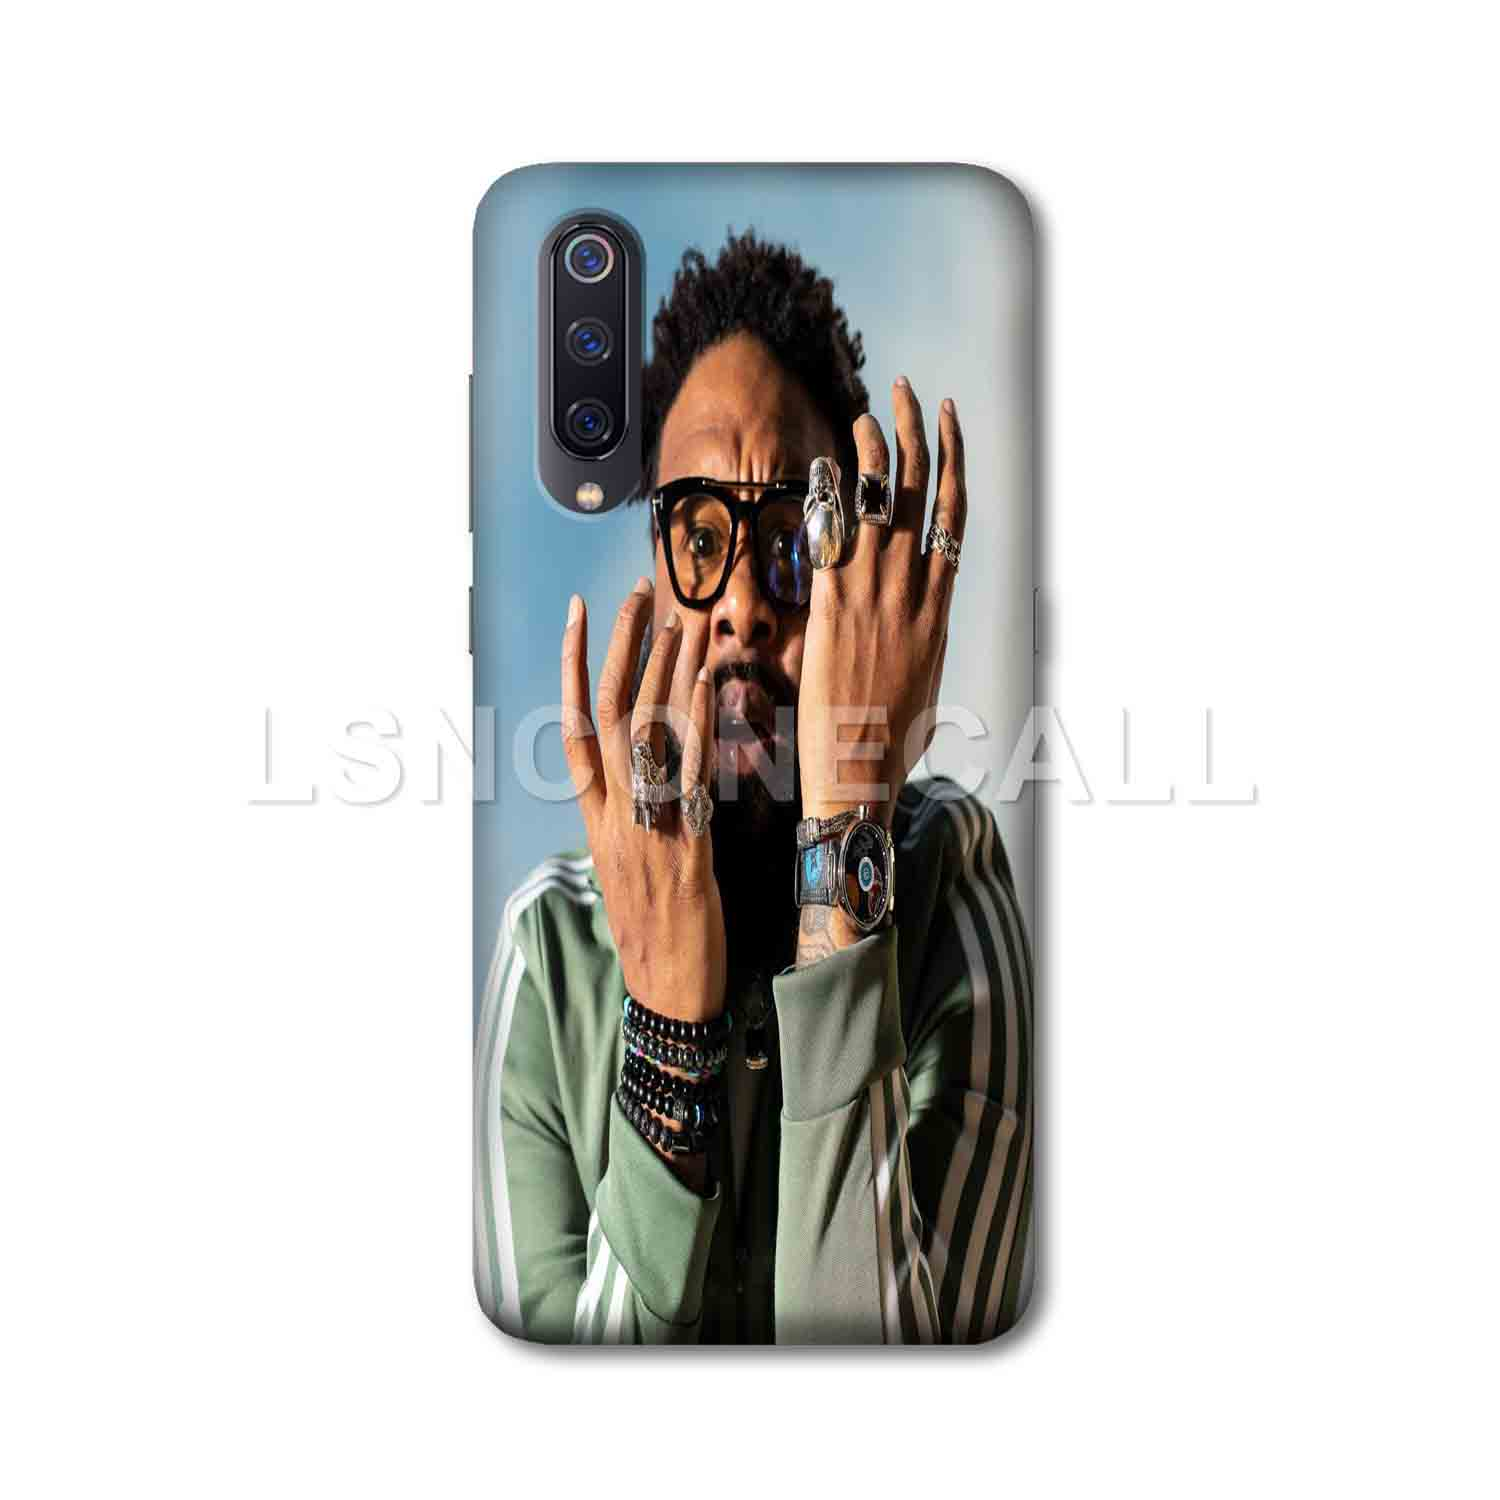 Xiaomi Case iphone samsung oppo vivo